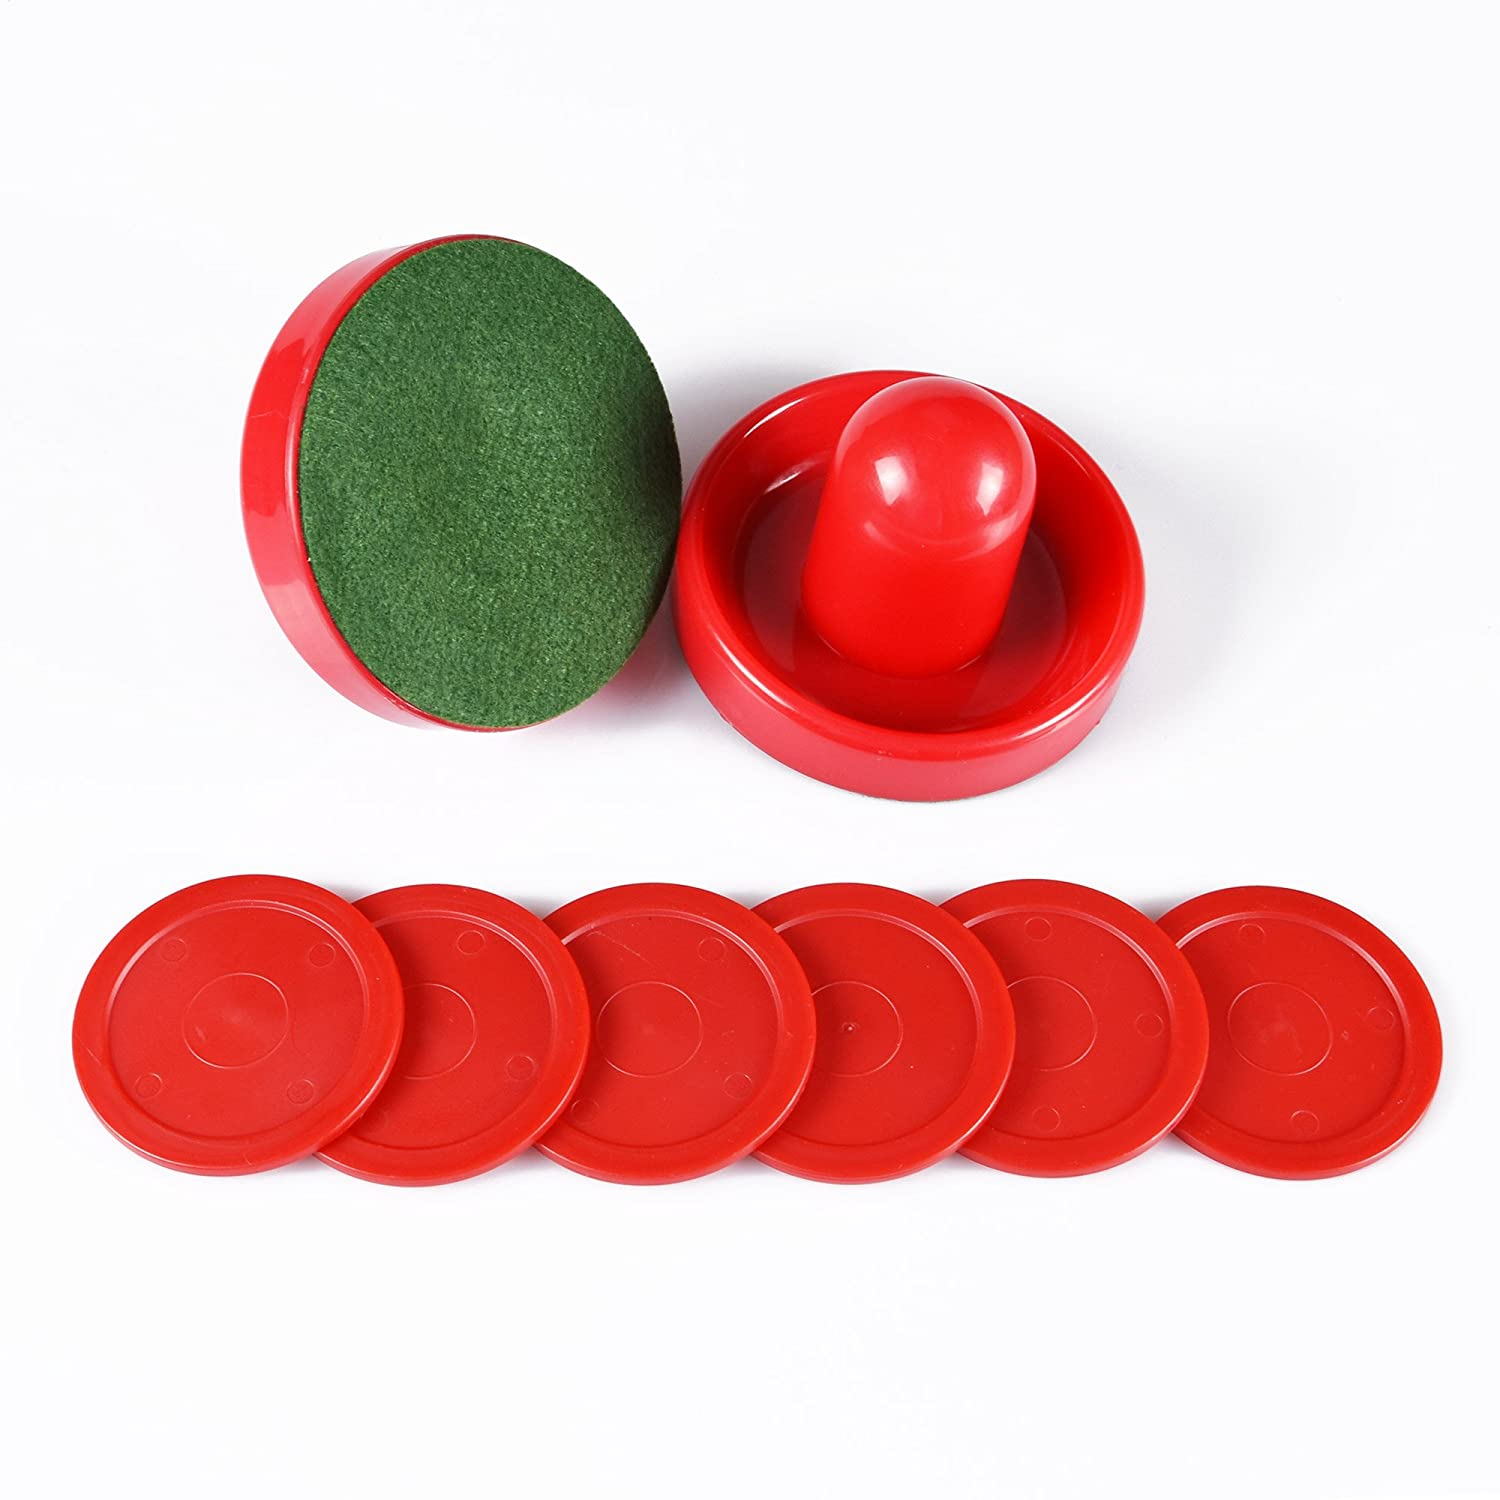 Goal Handles Paddles Replacement Accessories for Game Tables 4 Striker, 4 Puck Pack ONE250 Air Hockey Pushers and Red Air Hockey Pucks